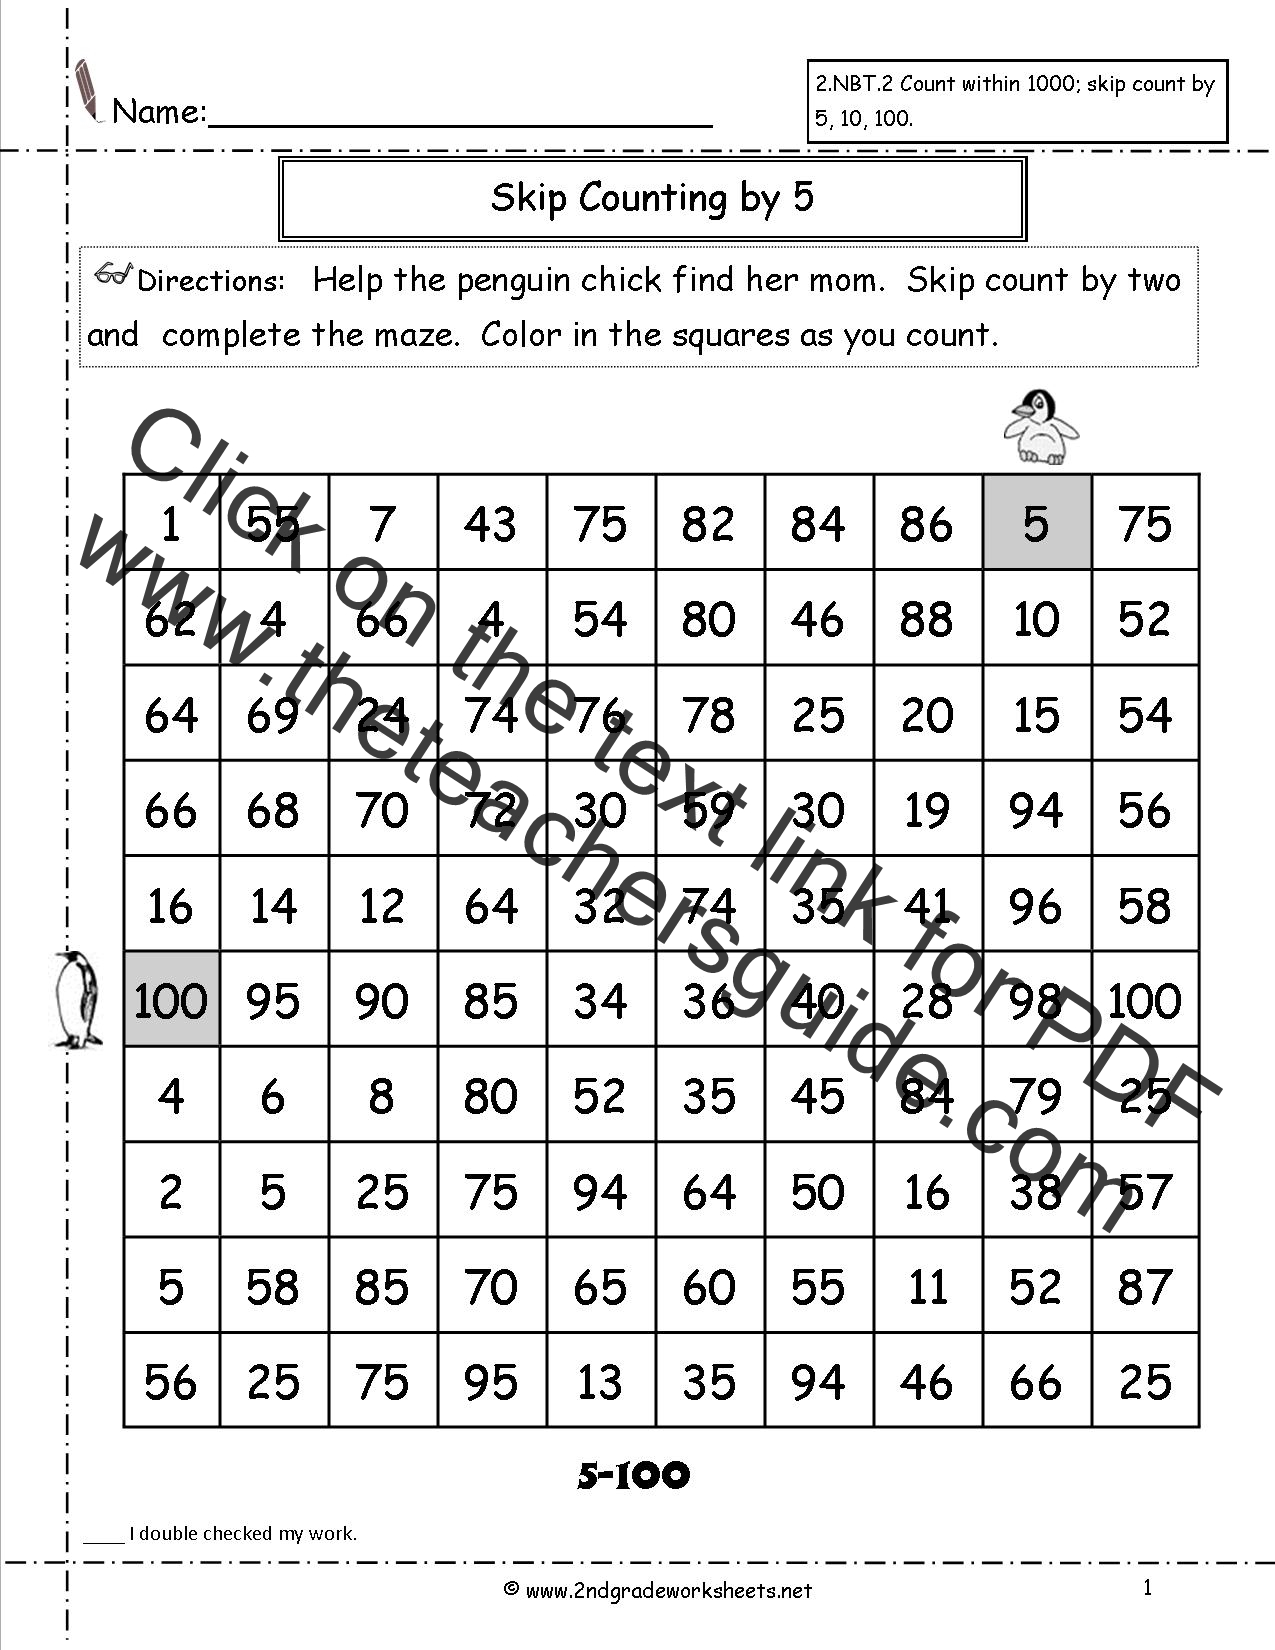 worksheet Printable Counting Worksheets free skip counting worksheets by 5 maze